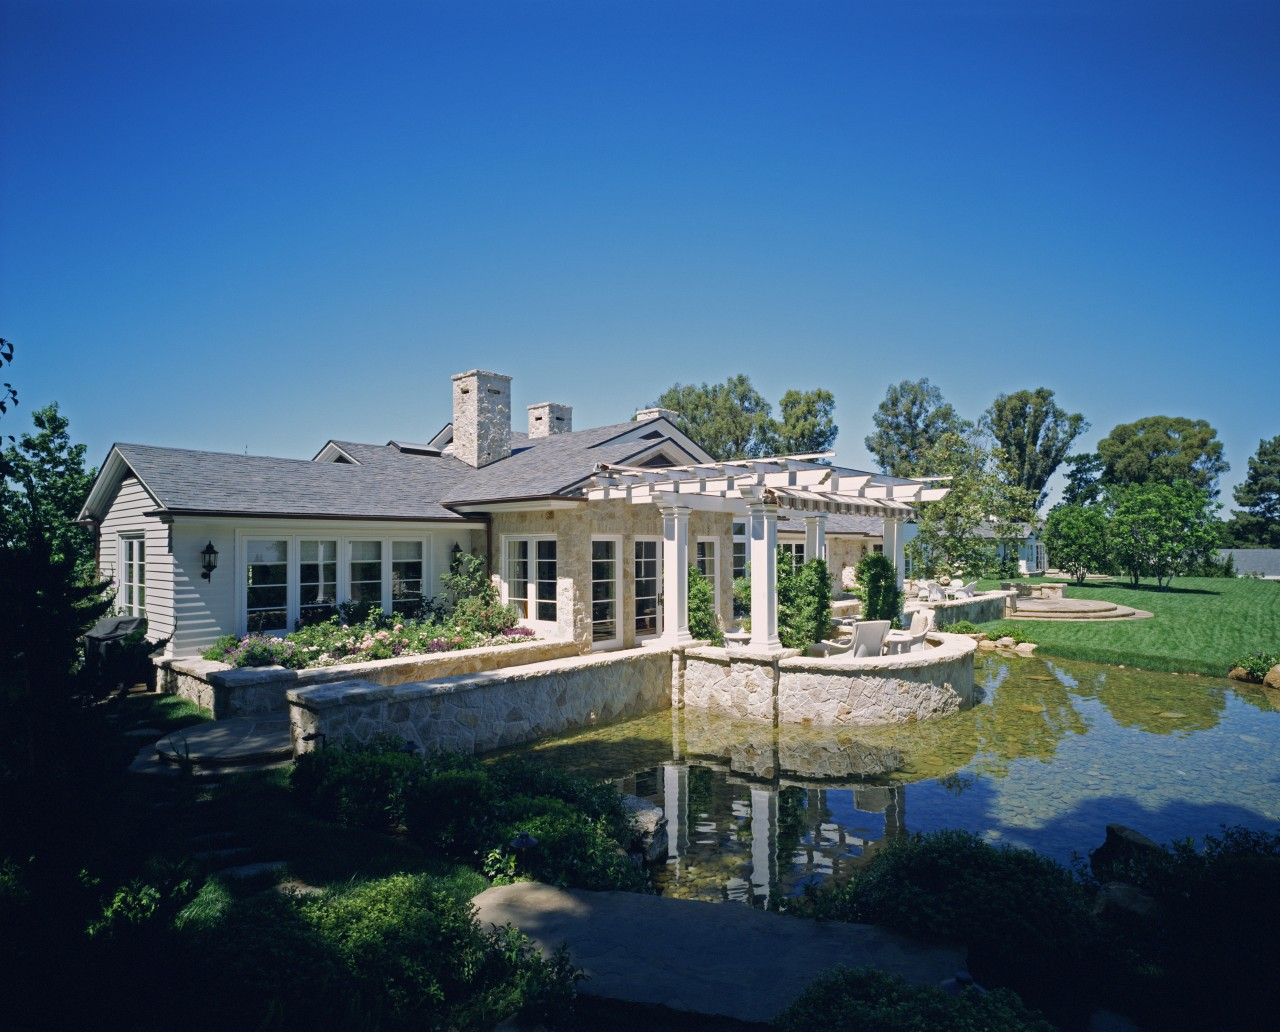 View of pond & gardens cottage, daytime, estate, home, house, landscape, mansion, property, real estate, reflection, residential area, sky, suburb, tree, villa, water, blue